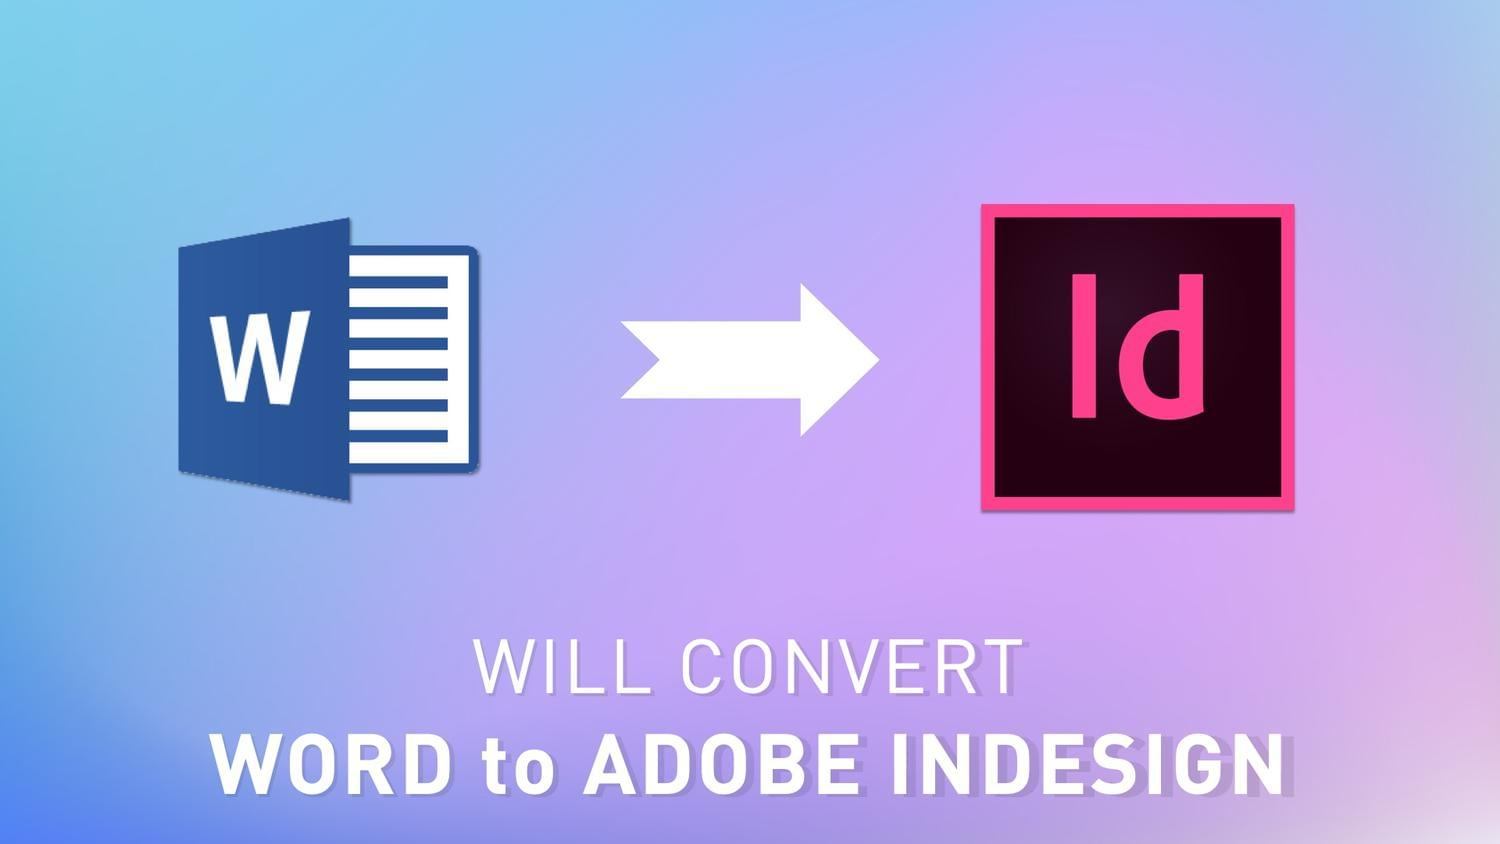 Convert Microsoft Word to InDesign by arvaone - 115109